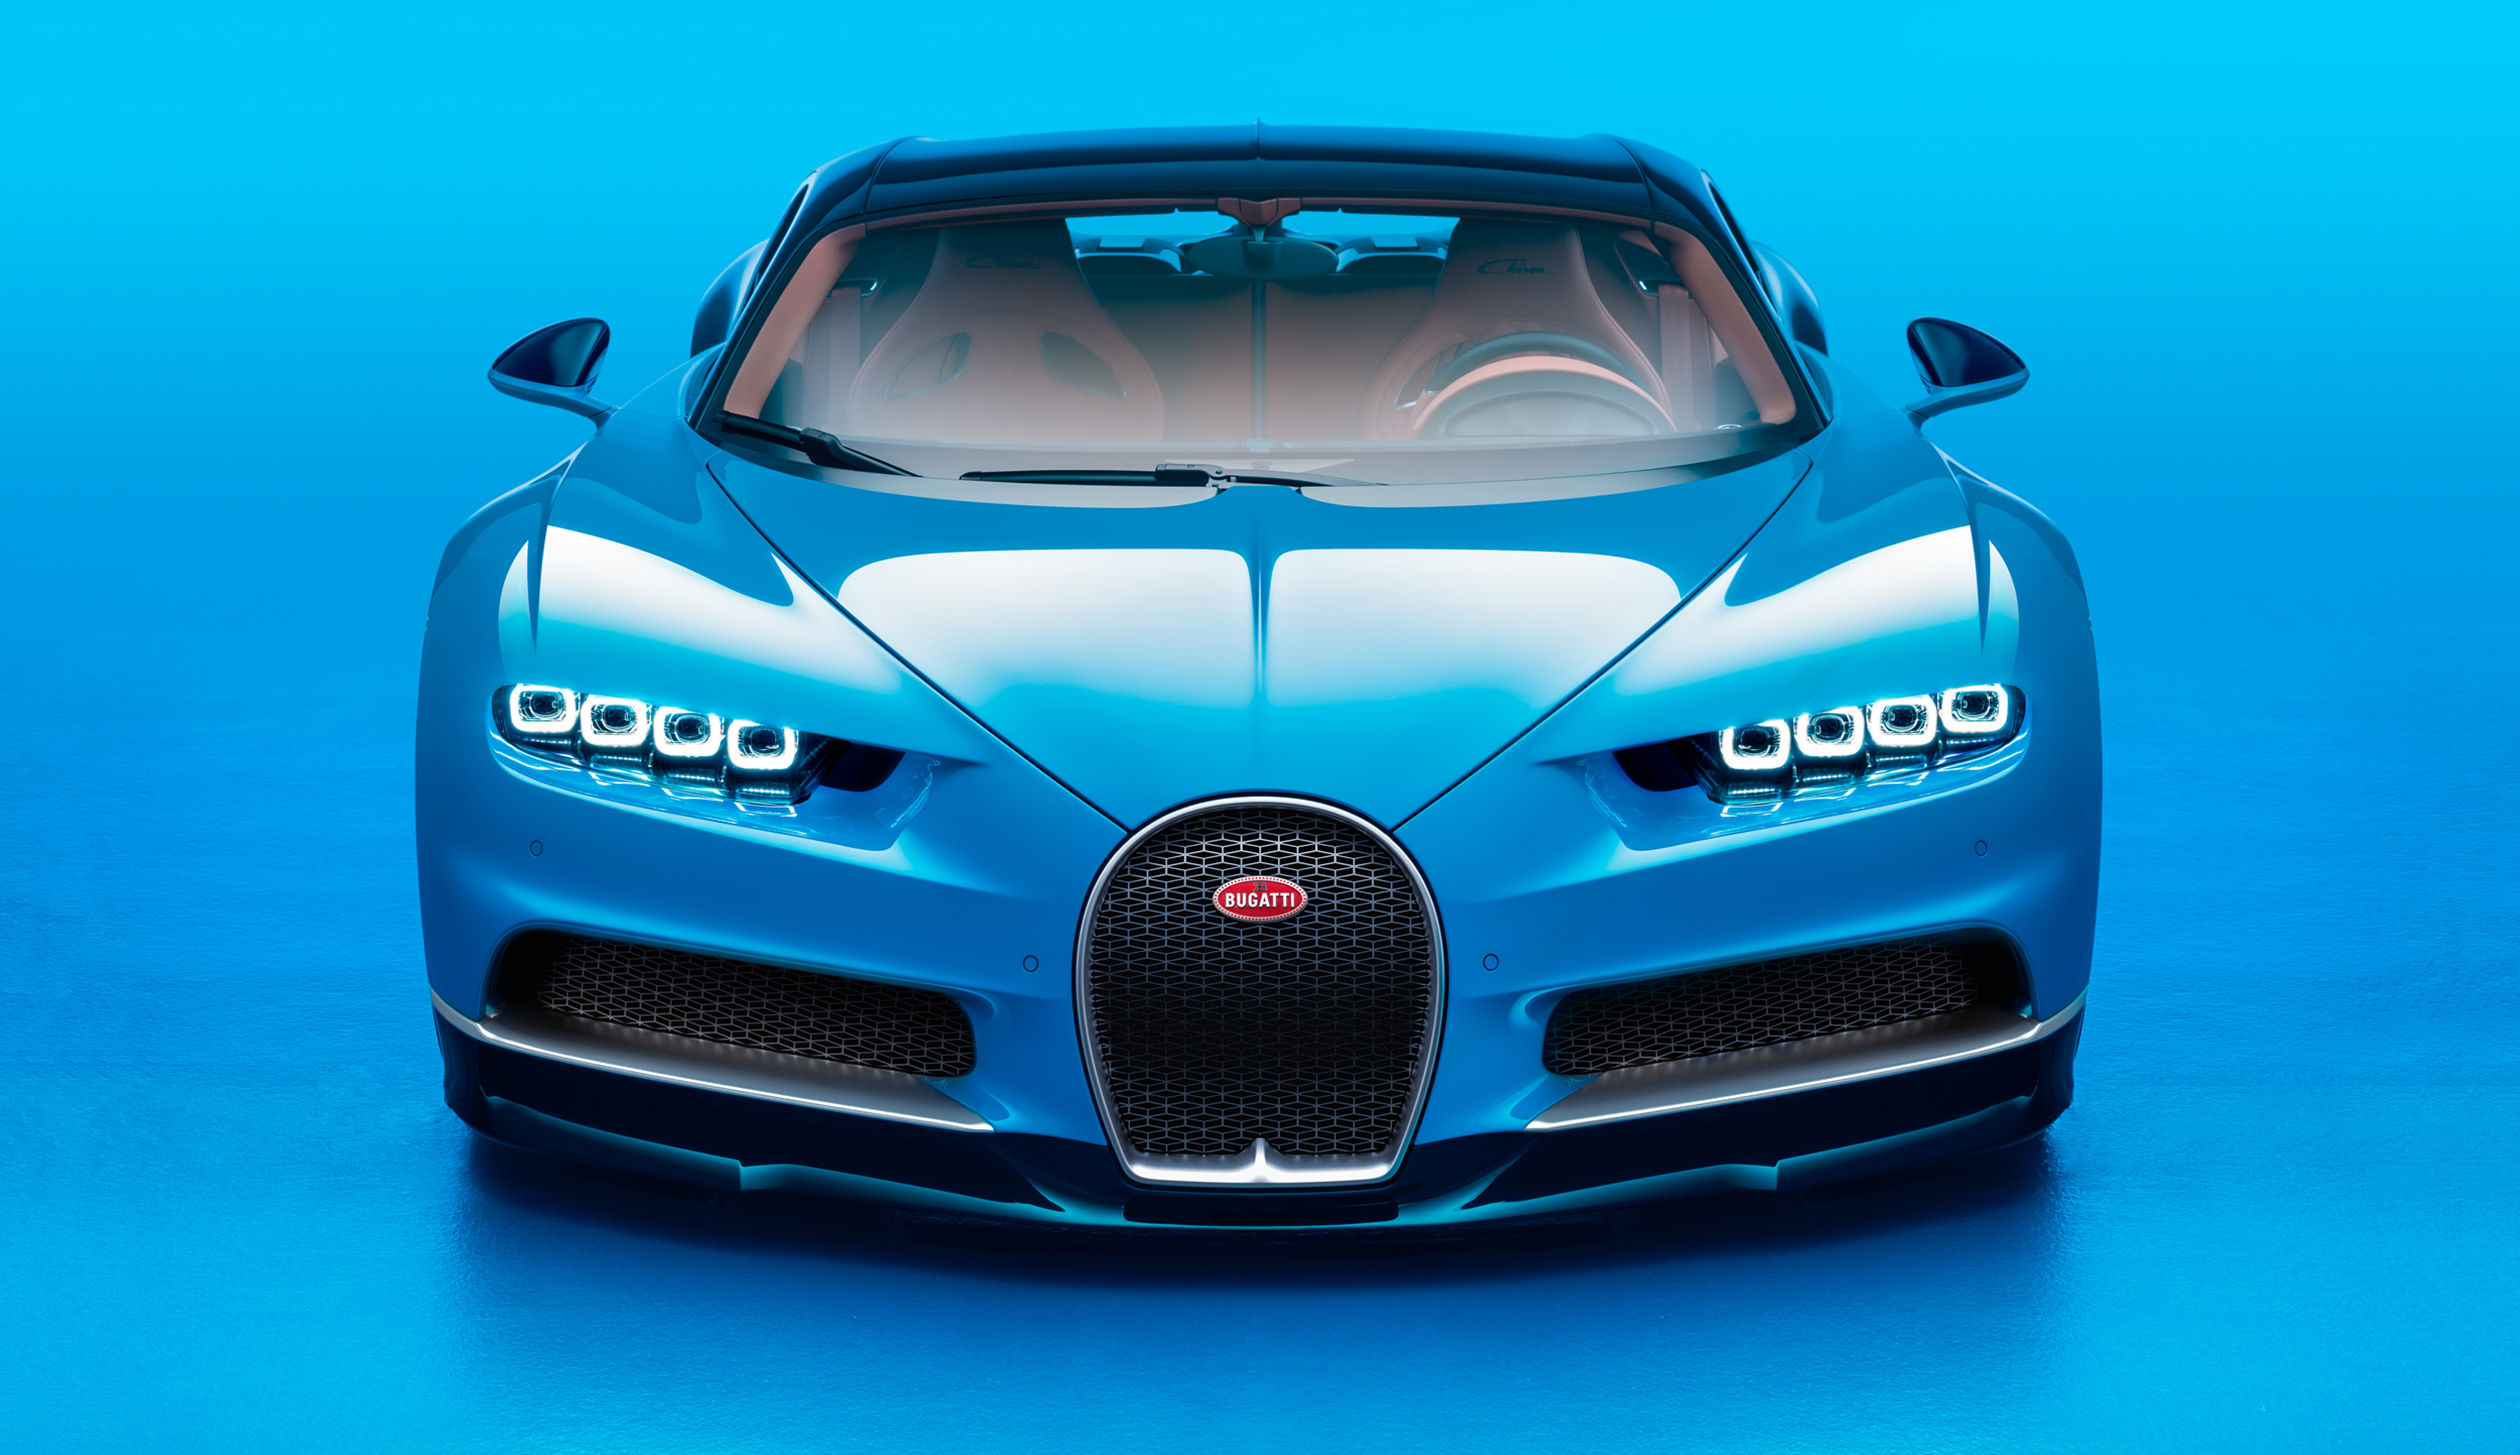 The Chiron, a limited production handcrafted beauty, is focused entirely on performance.